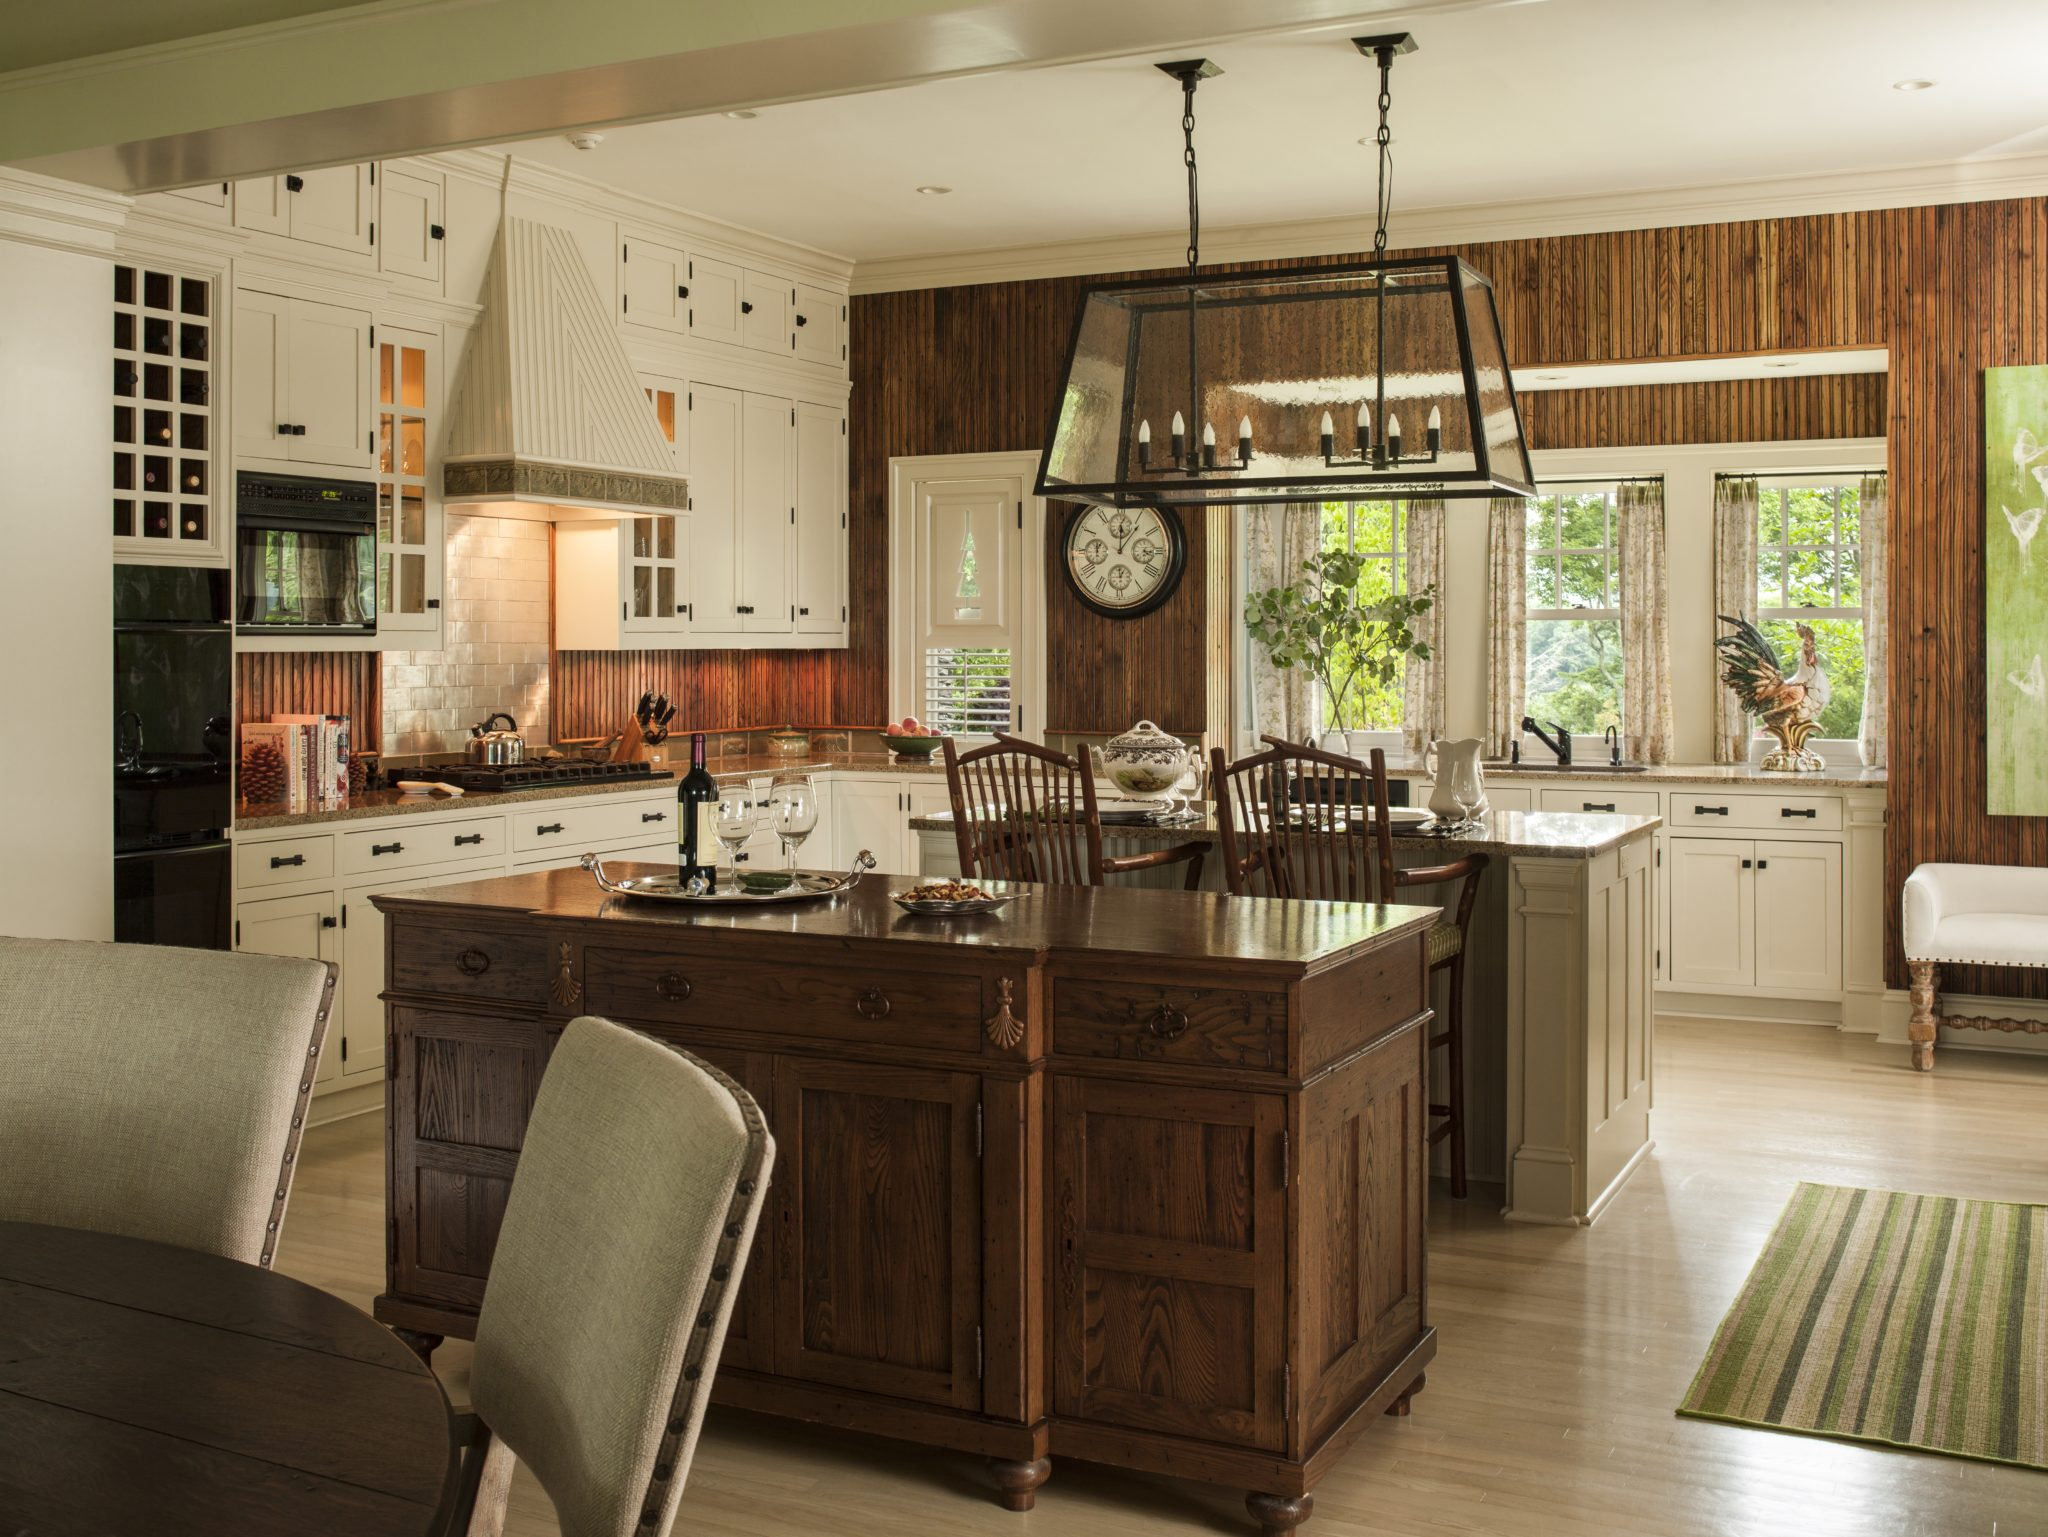 This traditional kitchen reflects the greens and browns of nature. By Taylor & Taylor